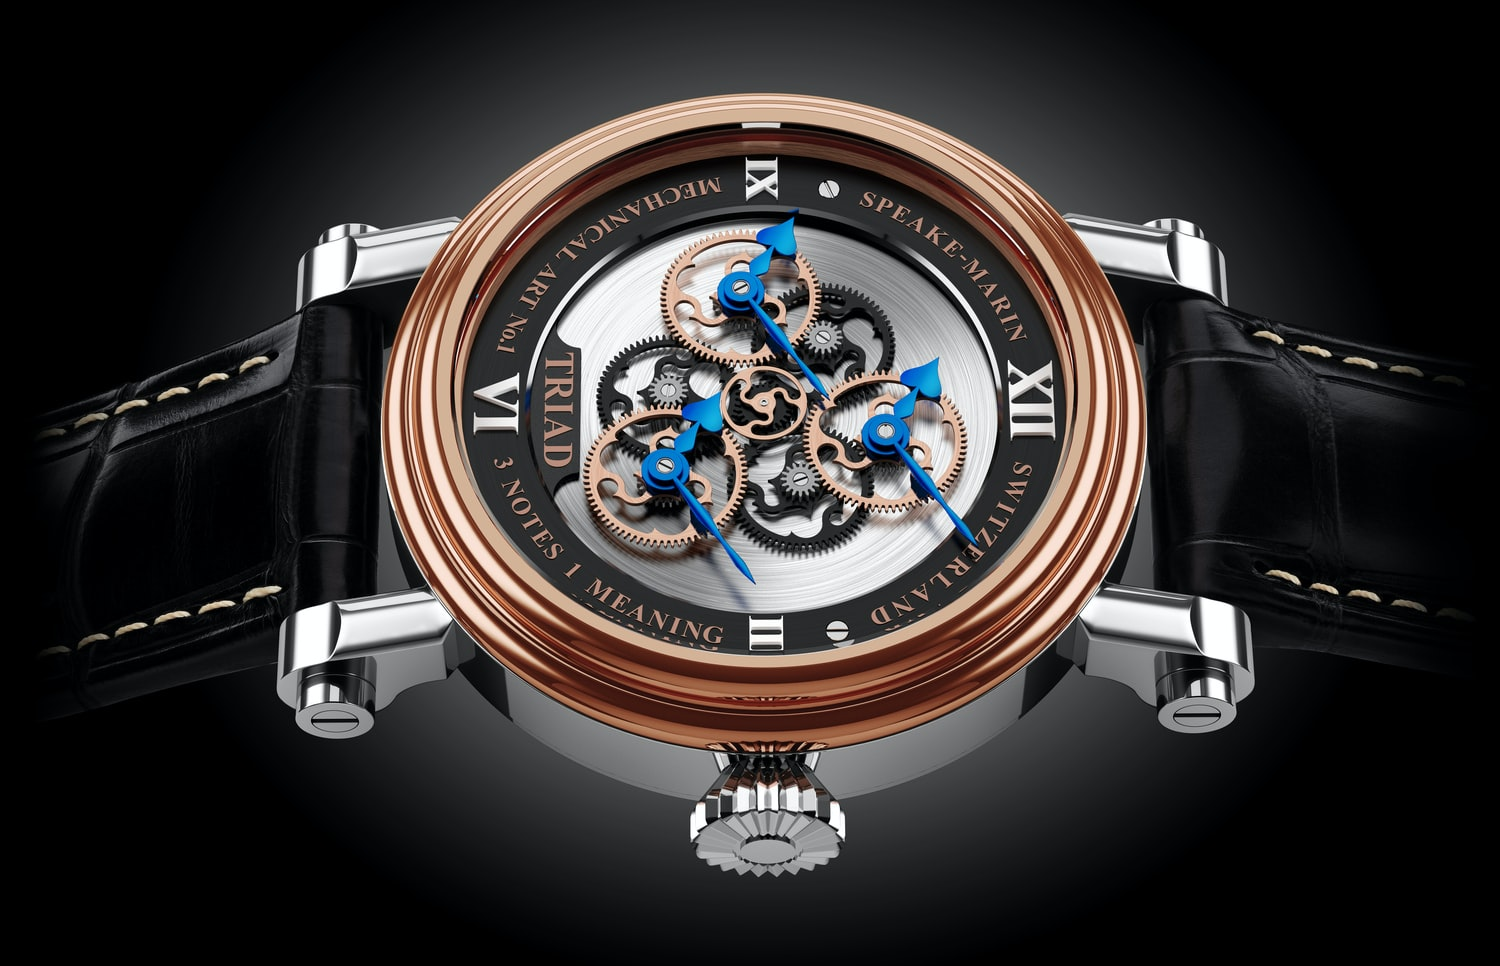 Introducing The Peter Speake-Marin Triad: A Tribute To The Number Three